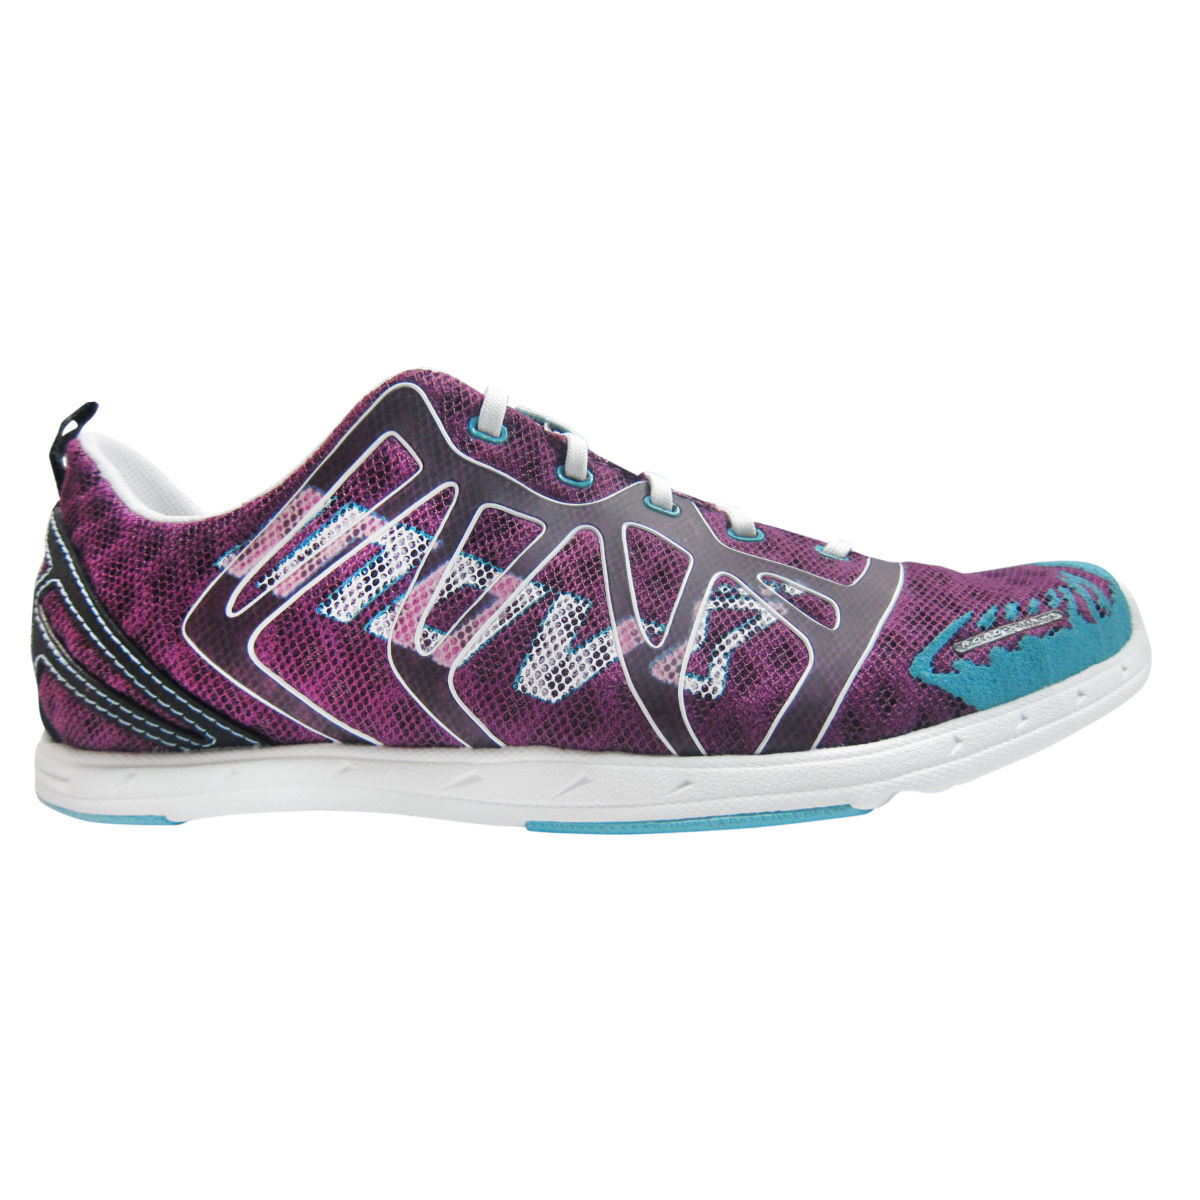 Womens Road-X-Treme 158 - SS14 Racing